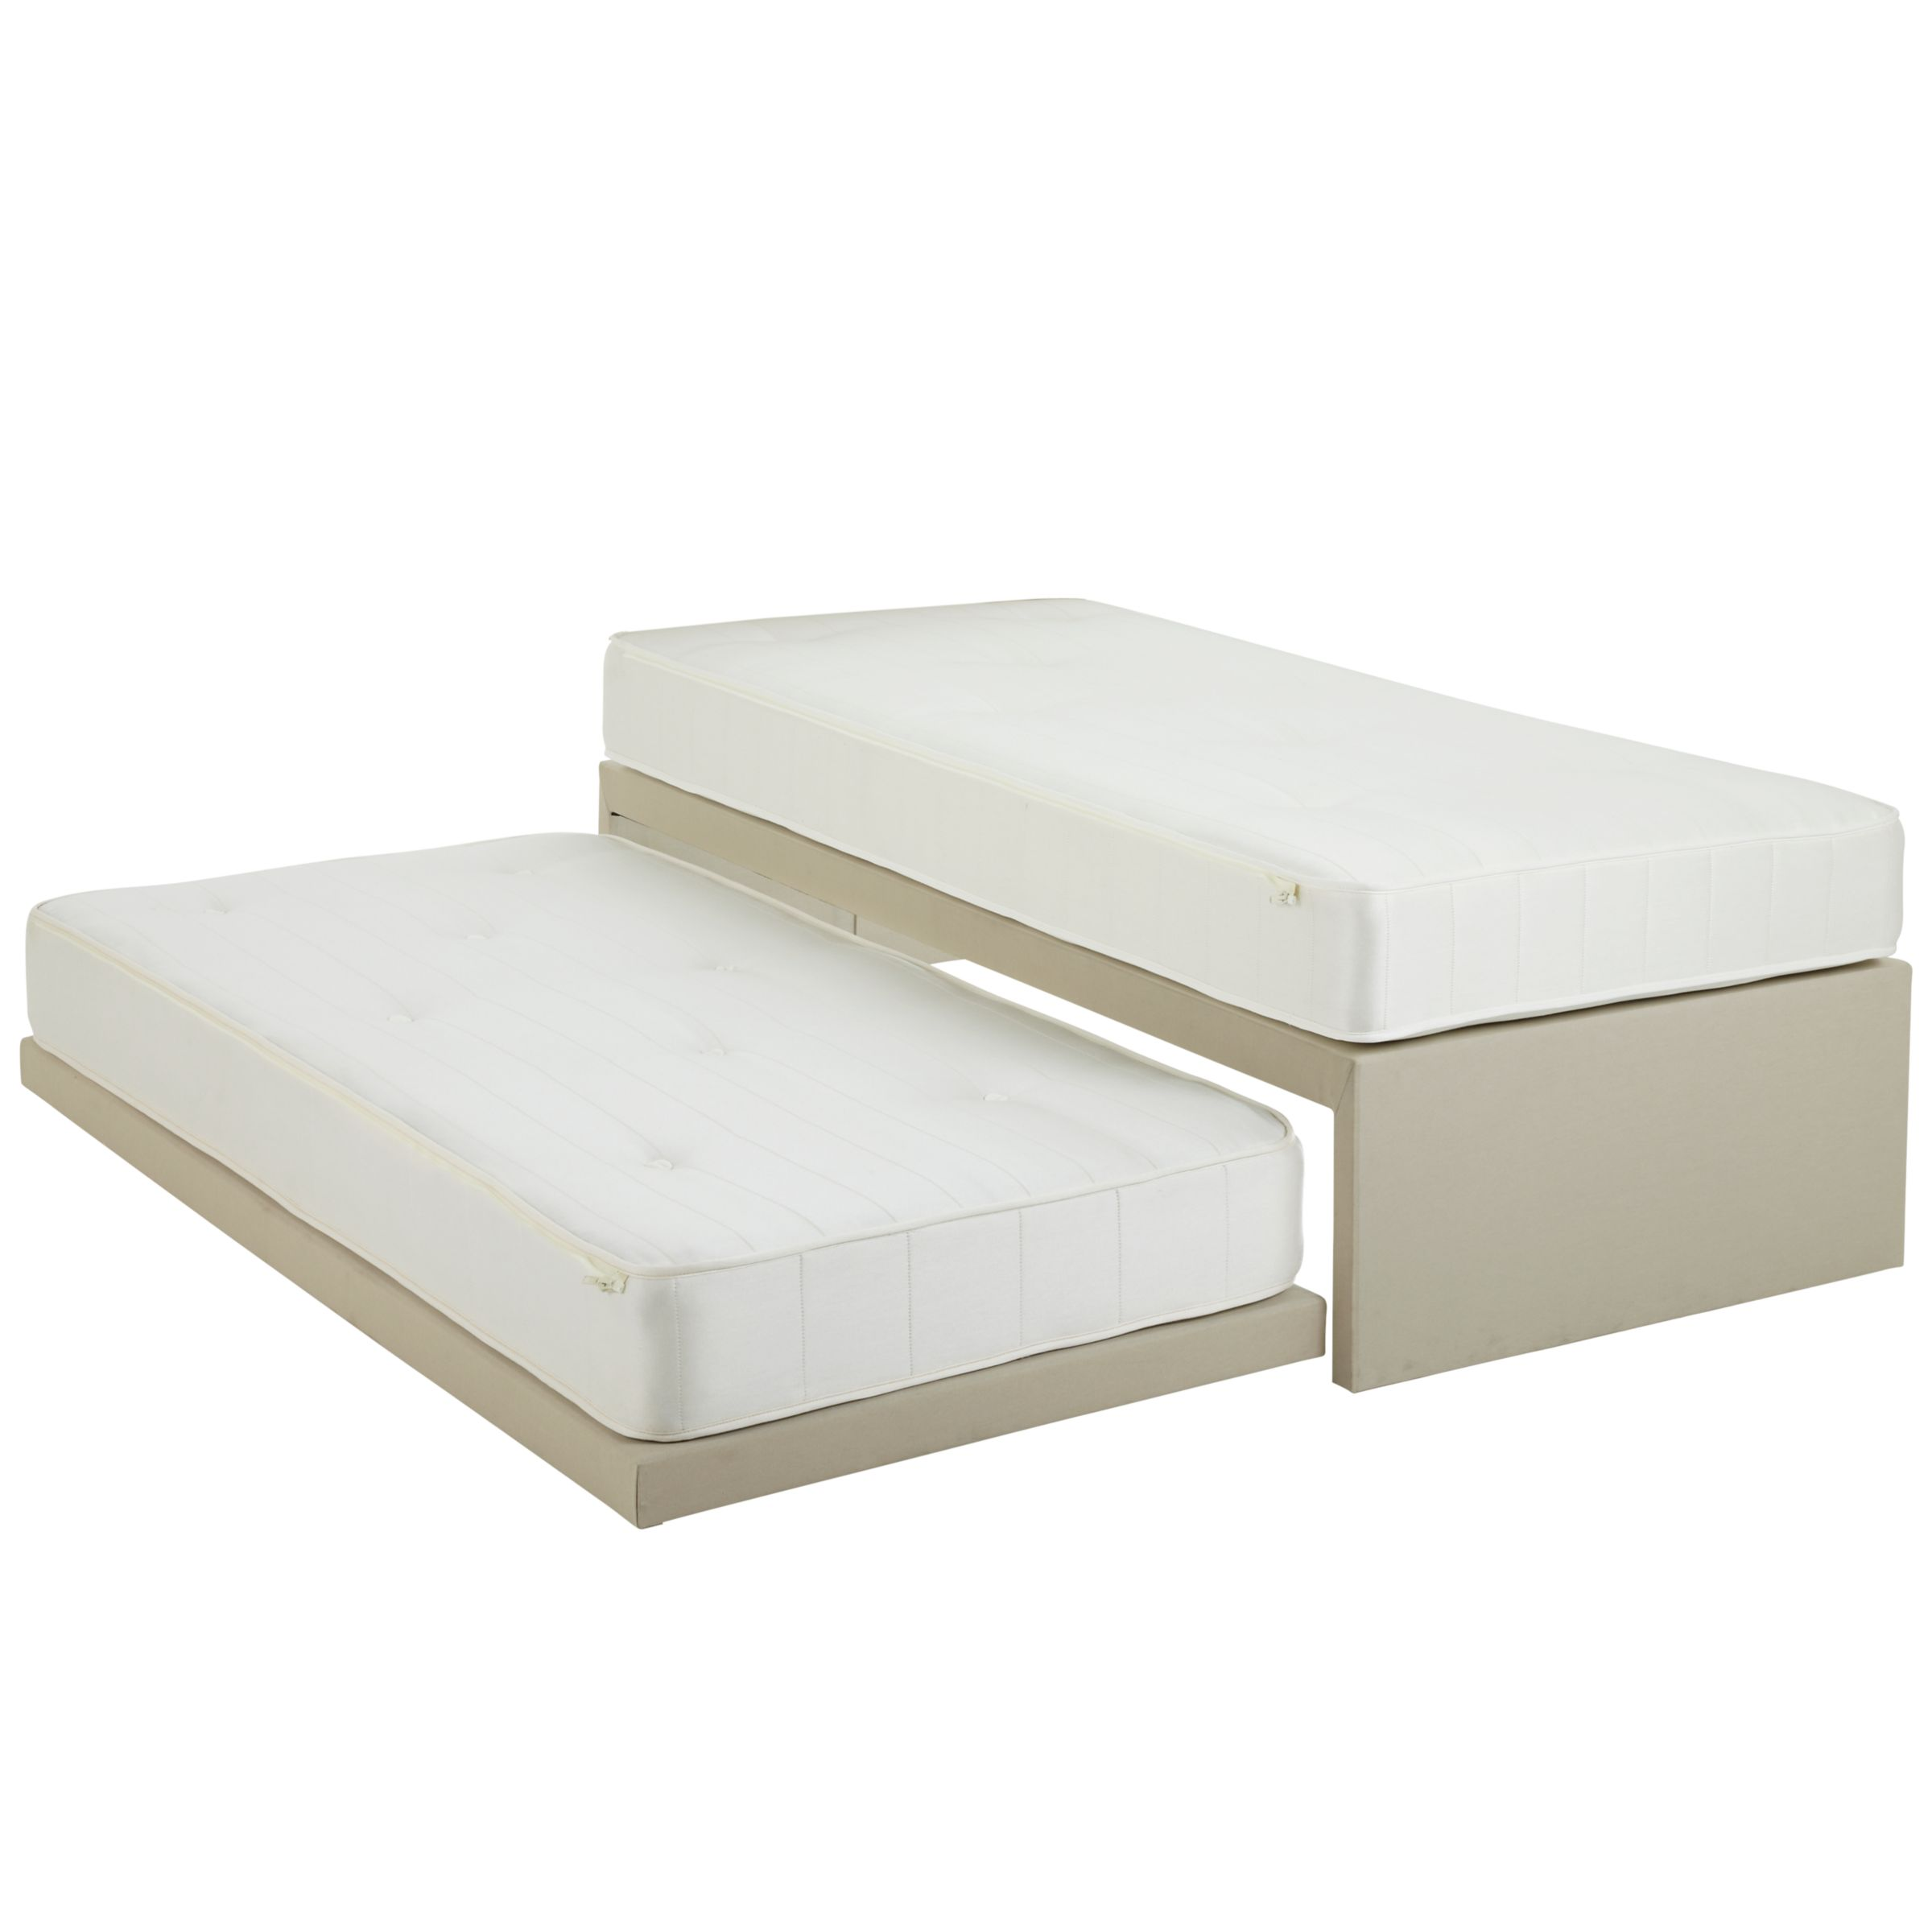 John Lewis & Partners Savoy Pocket and Open Spring Trundle Guest Bed, Single